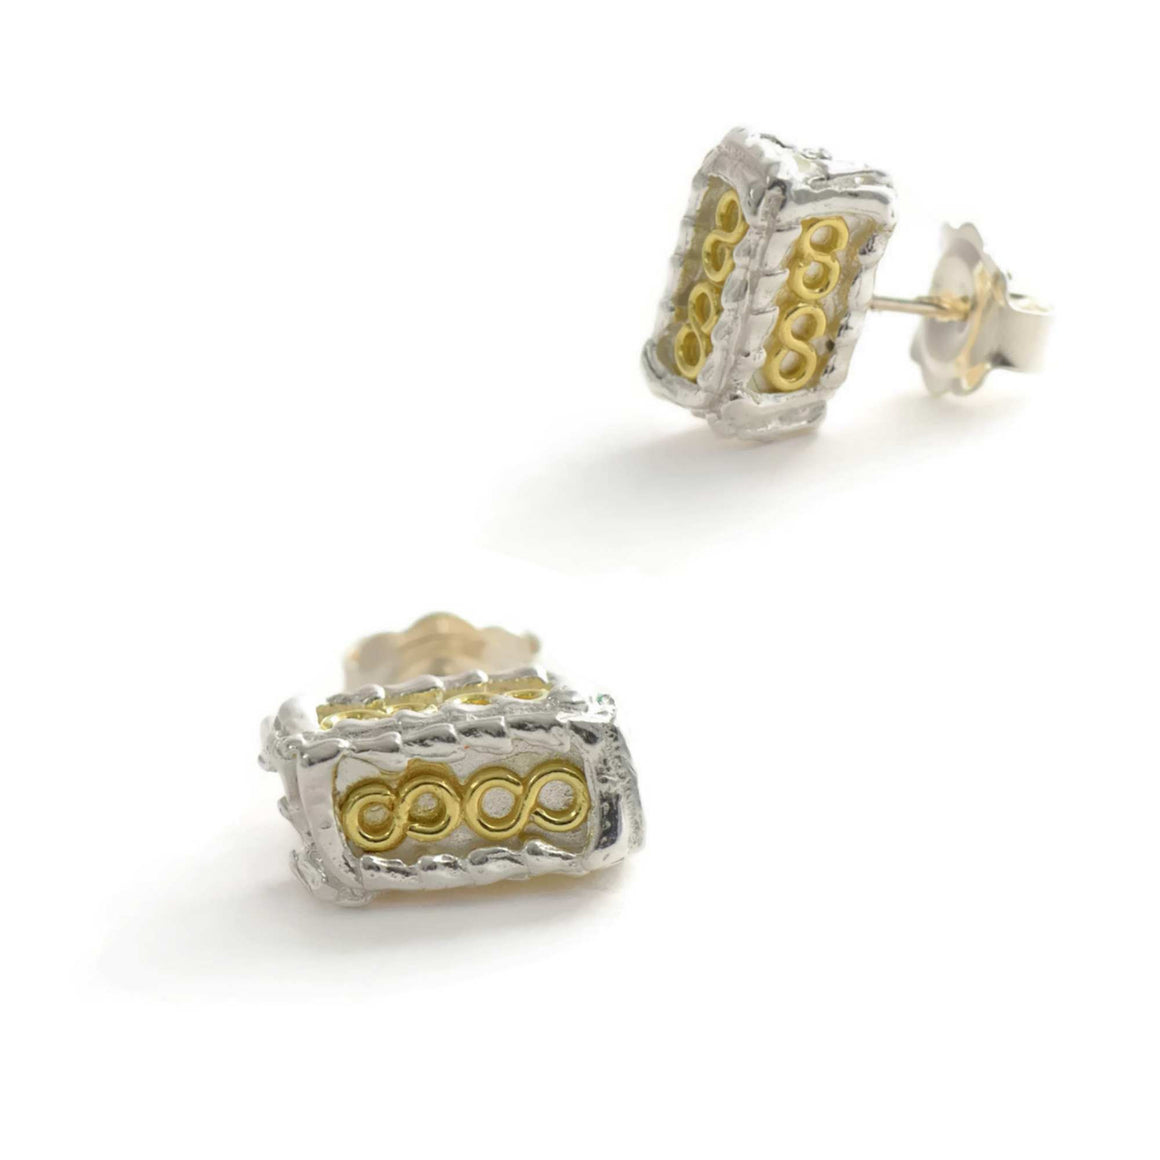 18ct gold and silver pettite patterned 3D rectangle stud earrings, geometrical designs